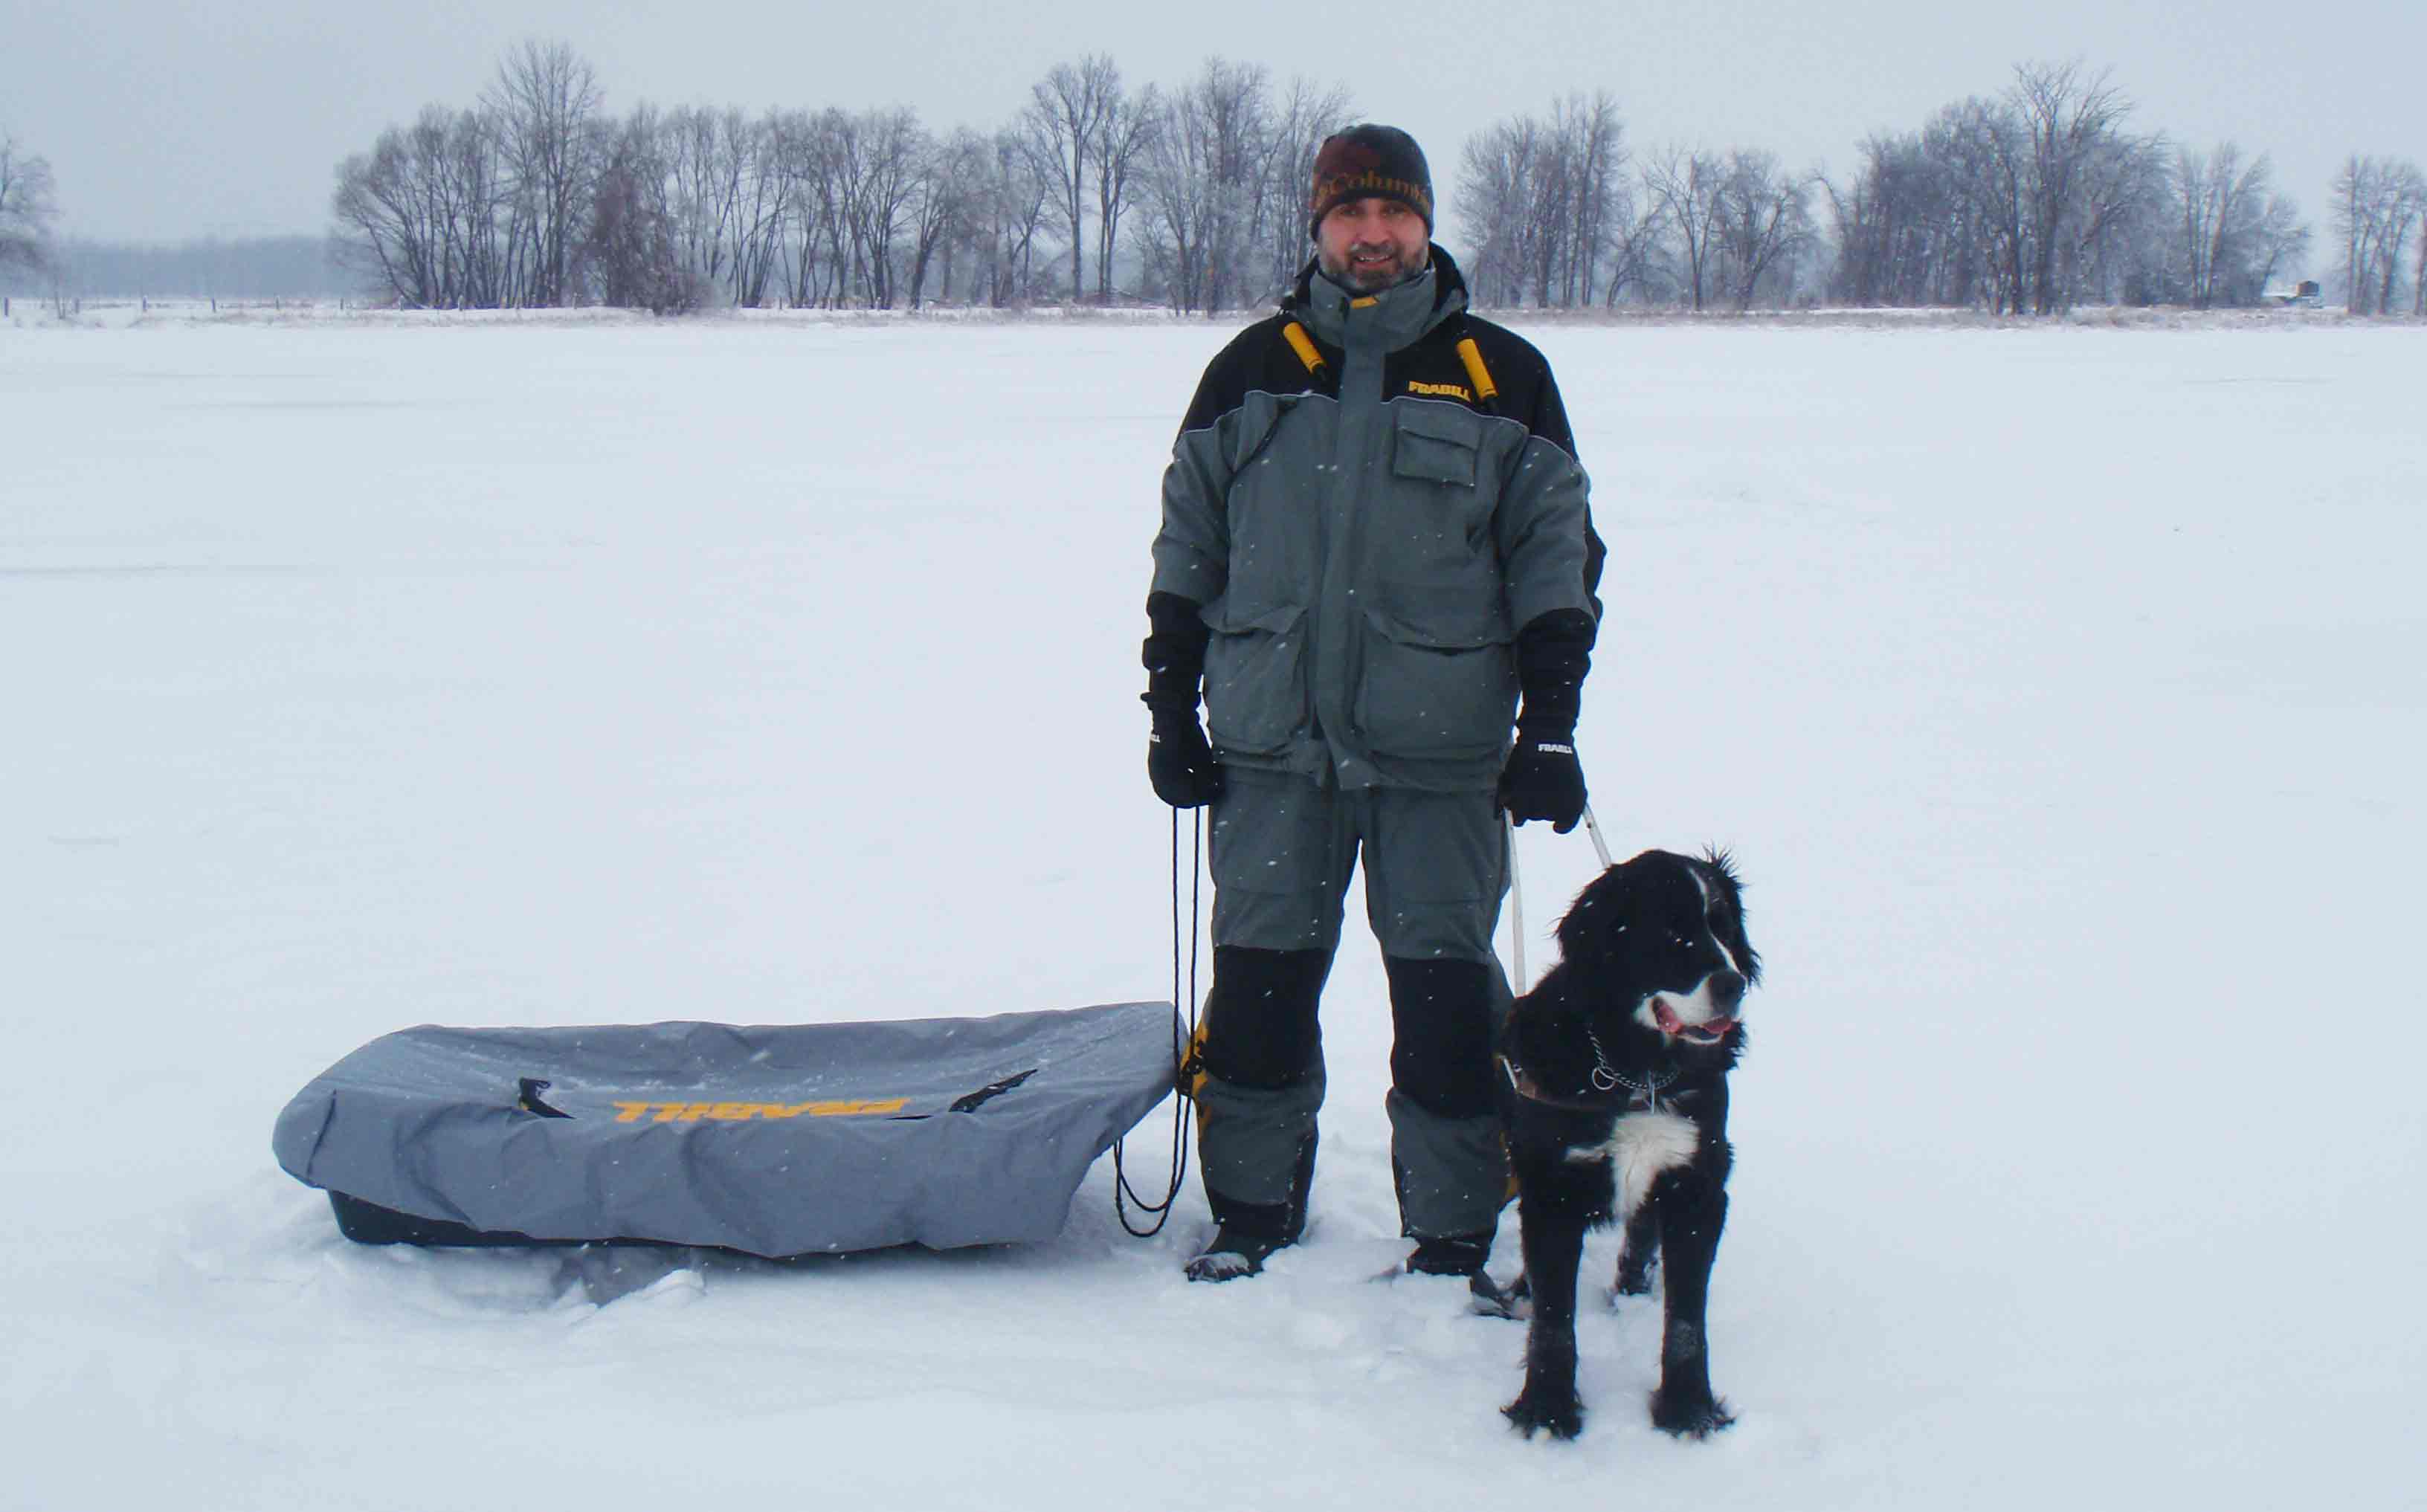 A man and a guide dog stand on a frozen lake. The man is wearing winter gear.